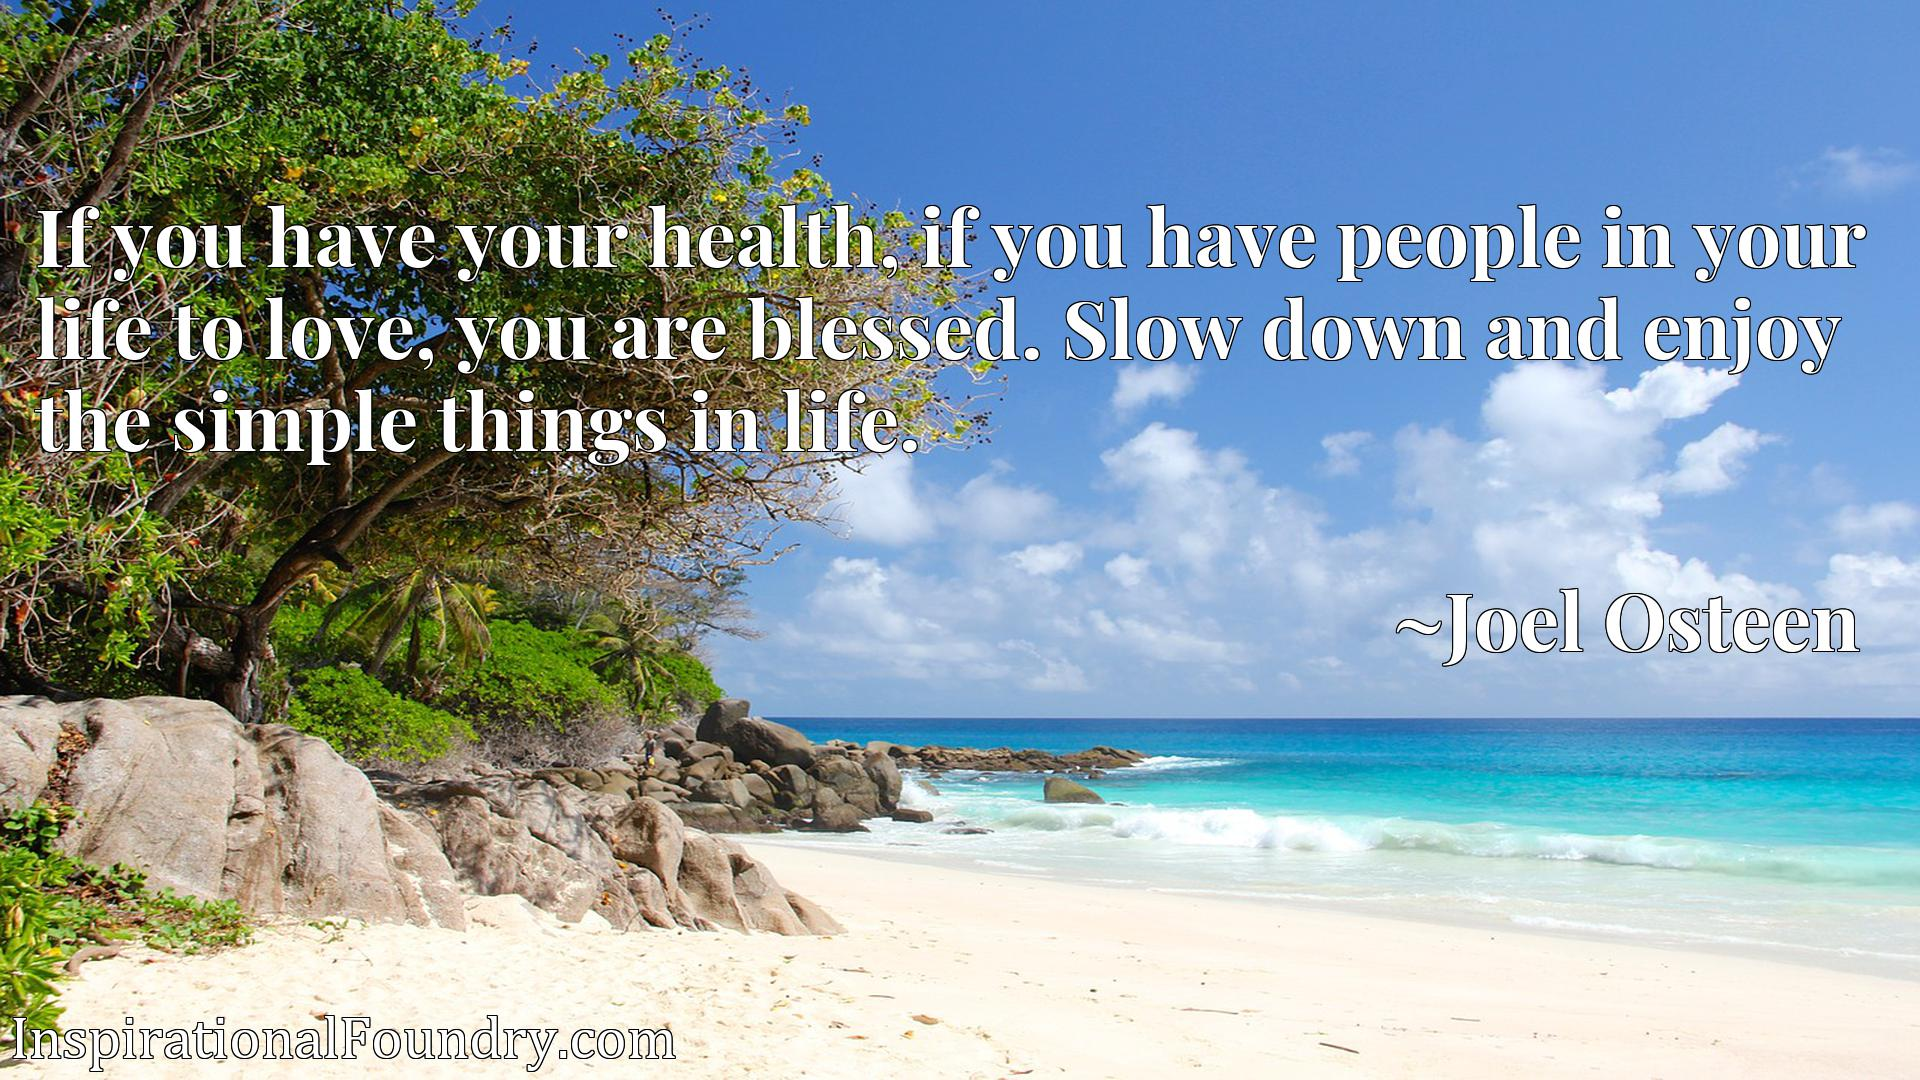 If you have your health, if you have people in your life to love, you are blessed. Slow down and enjoy the simple things in life.